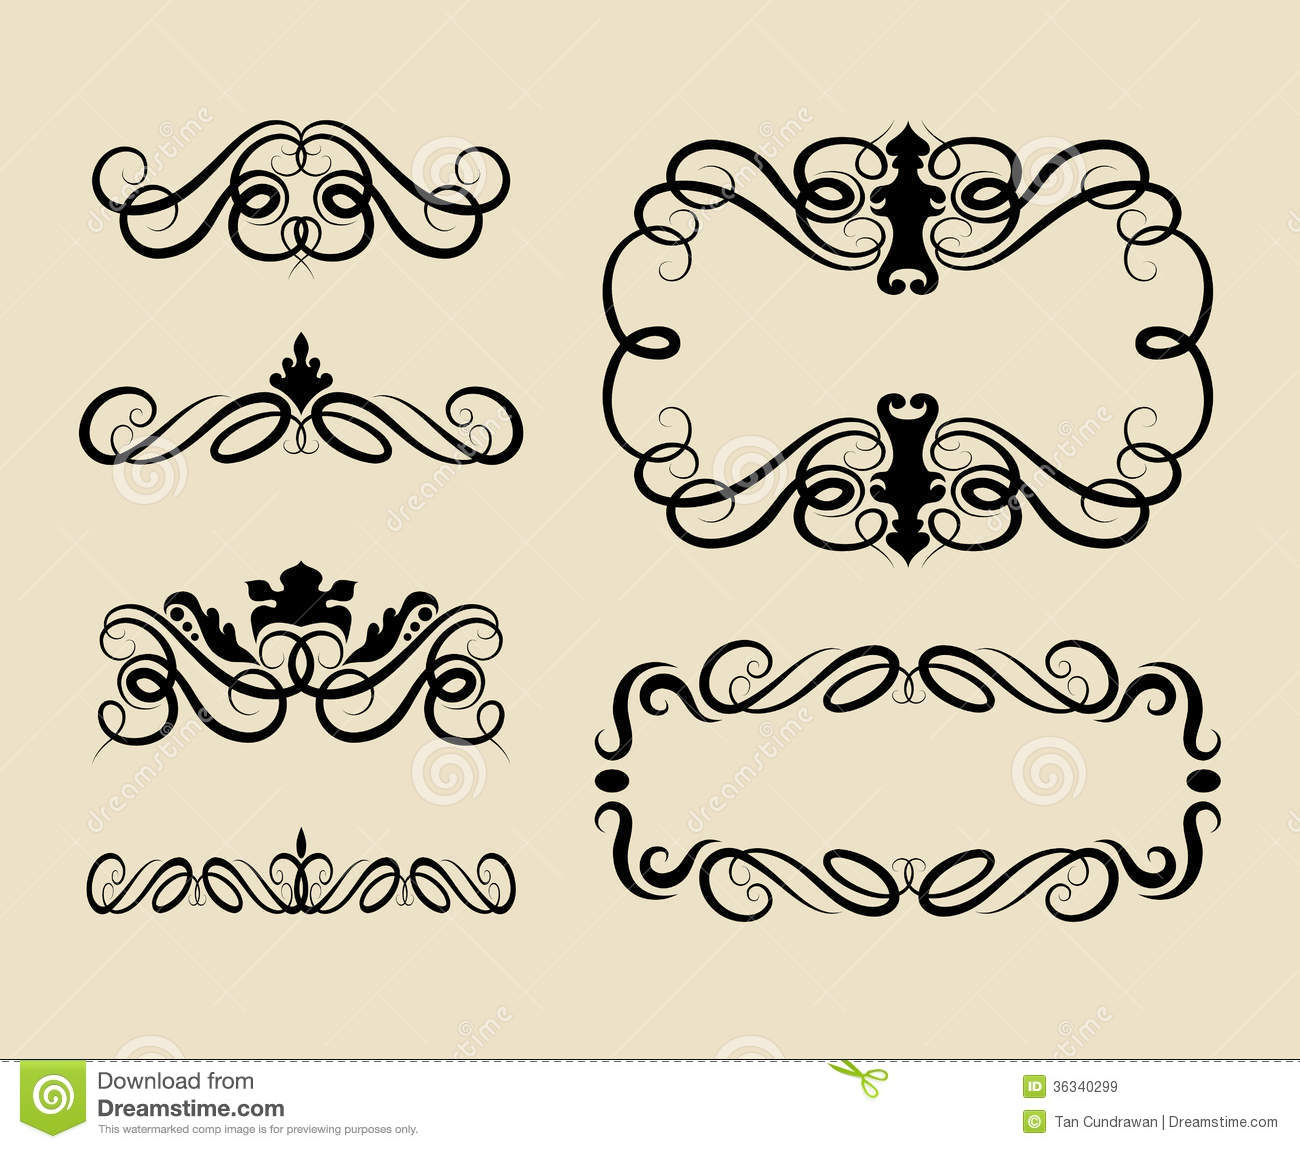 Curl Swirl Ornament Decorations Royalty Free Stock Images ...